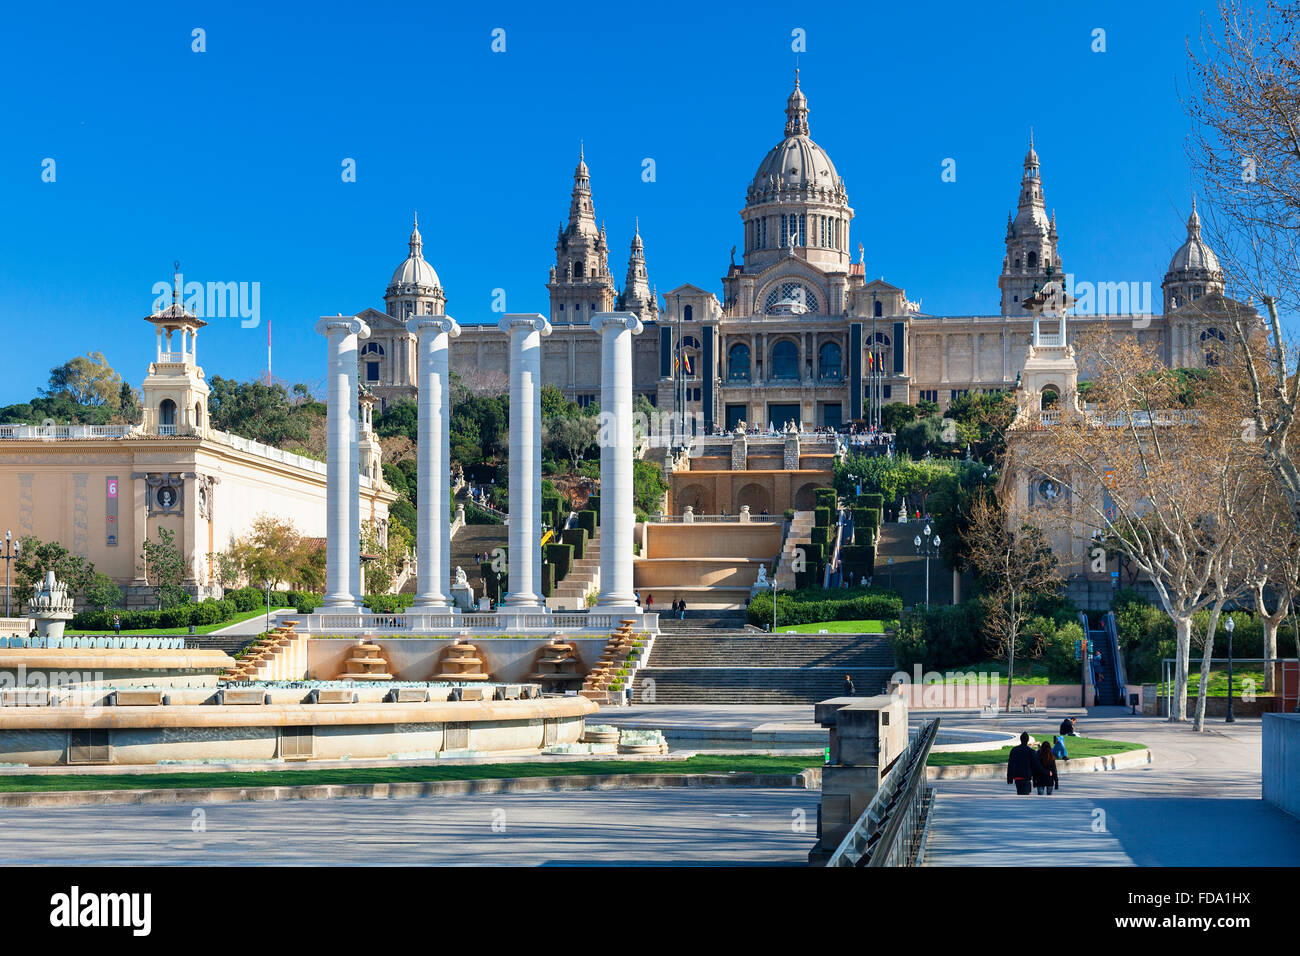 Spain, Catalonia, Barcelona, Montjuic, Catalonia National Museum of Art (MNAC), National Palace (Palau Nacional) - Stock Image